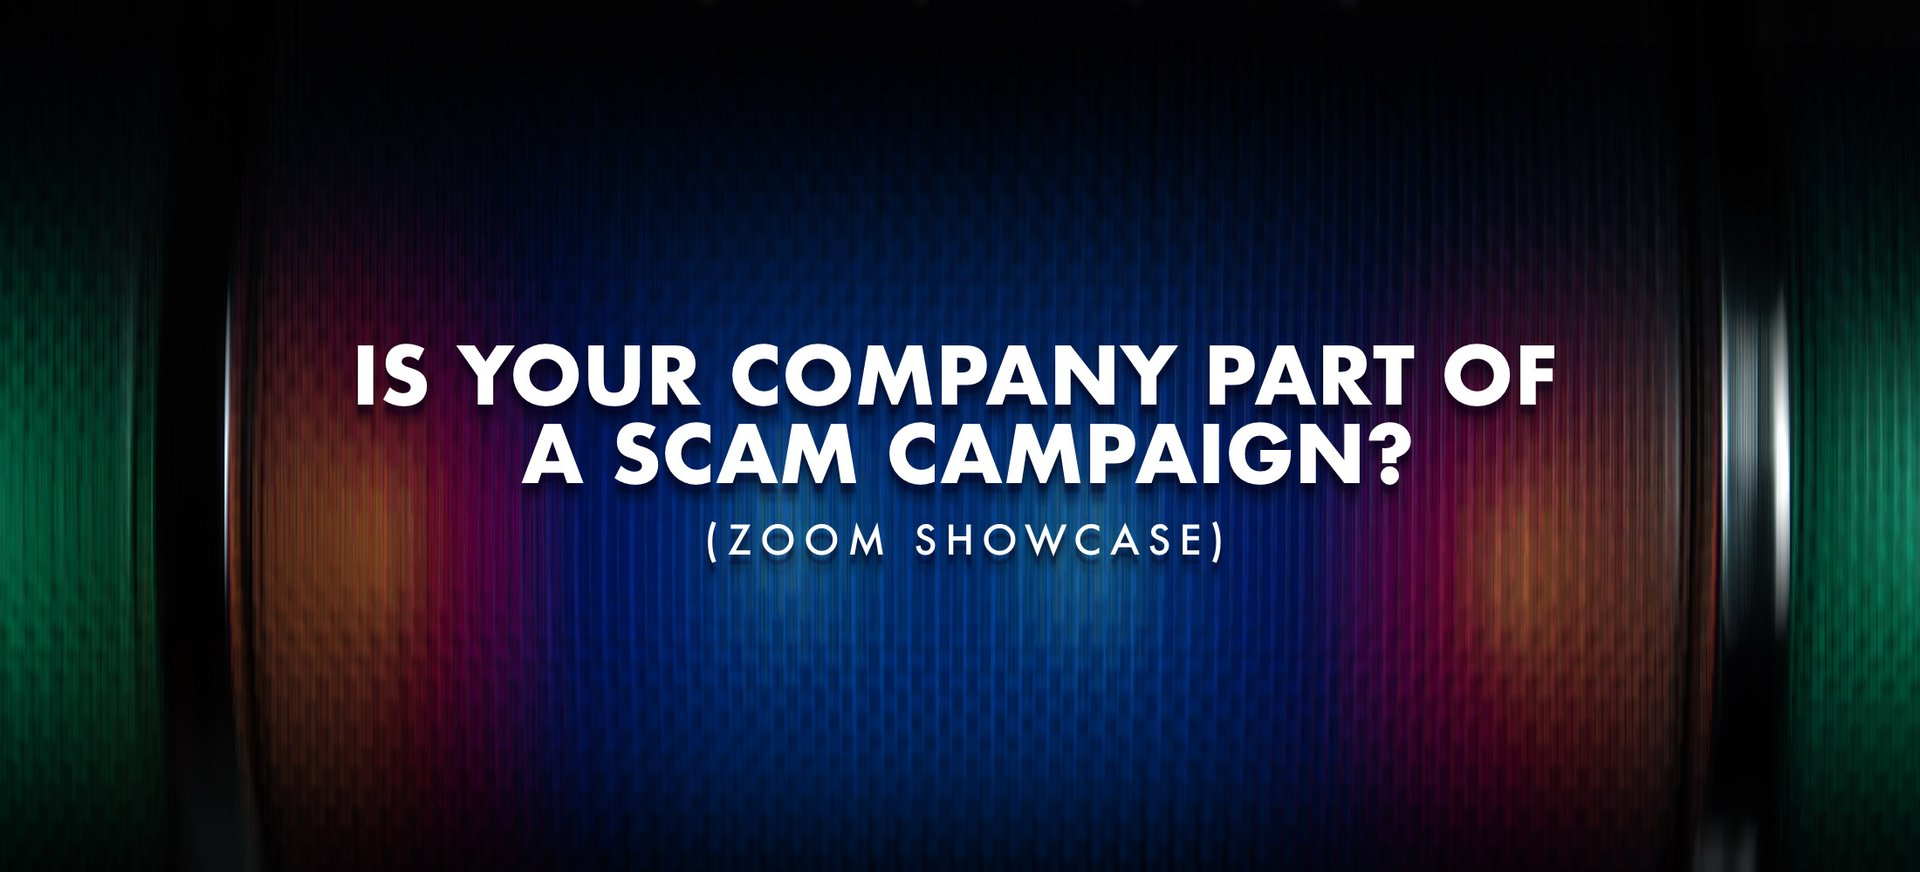 Is Your Company Part of a Scam Campaign? (Zoom Showcase).